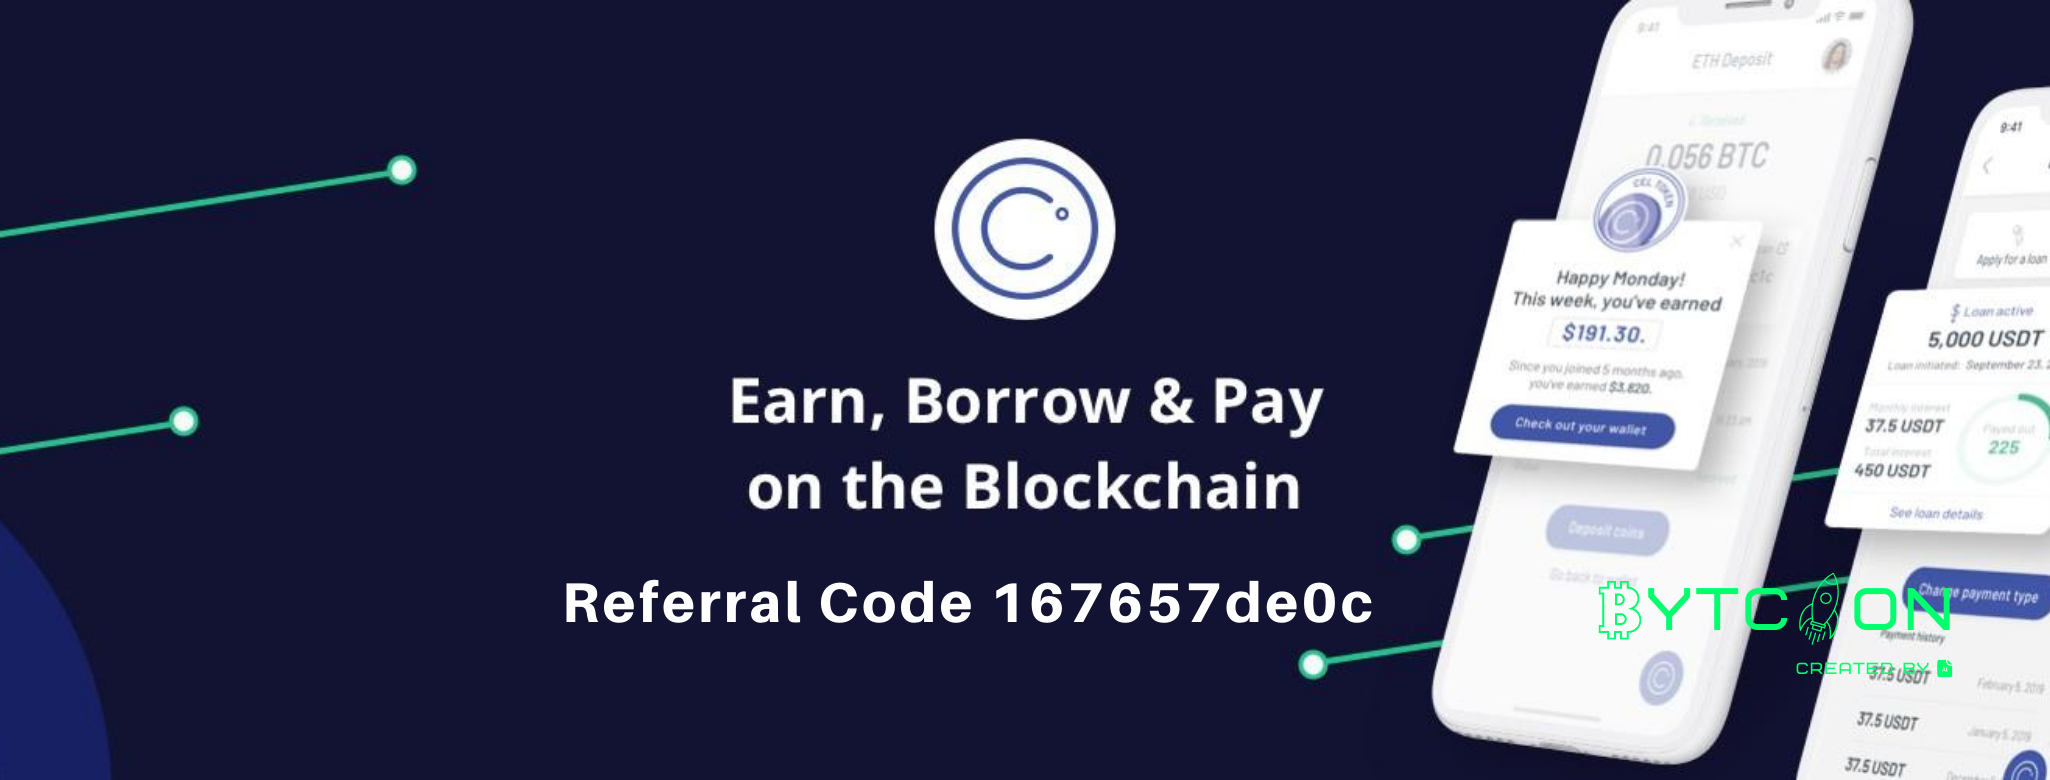 Earn free BTC Join Celsius Network using my referral code 167657de0c when signing up and earn $20 in BTC with your first deposit of $200 or more! #UnbankYourself